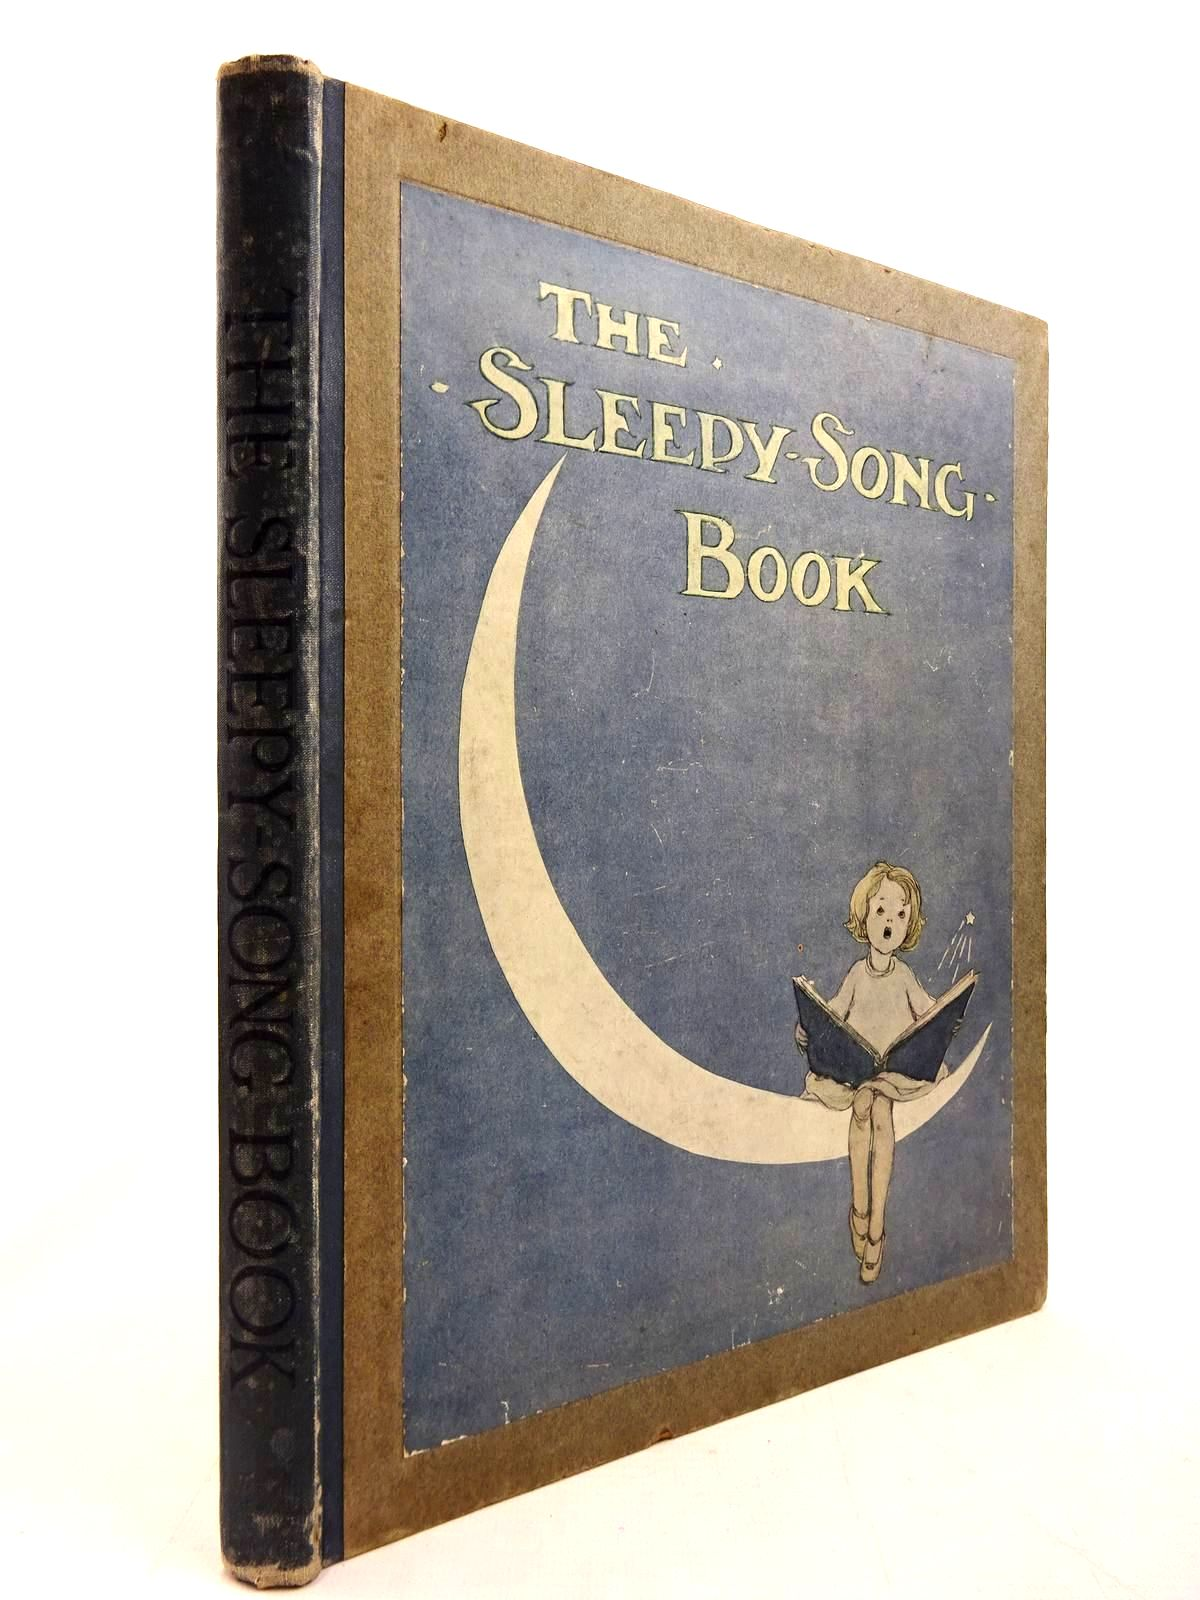 Photo of THE SLEEPY-SONG BOOK written by Field, Eugene Byron, May Campbell, Florence illustrated by Anderson, Anne published by George G. Harrap & Co. Ltd. (STOCK CODE: 2130746)  for sale by Stella & Rose's Books